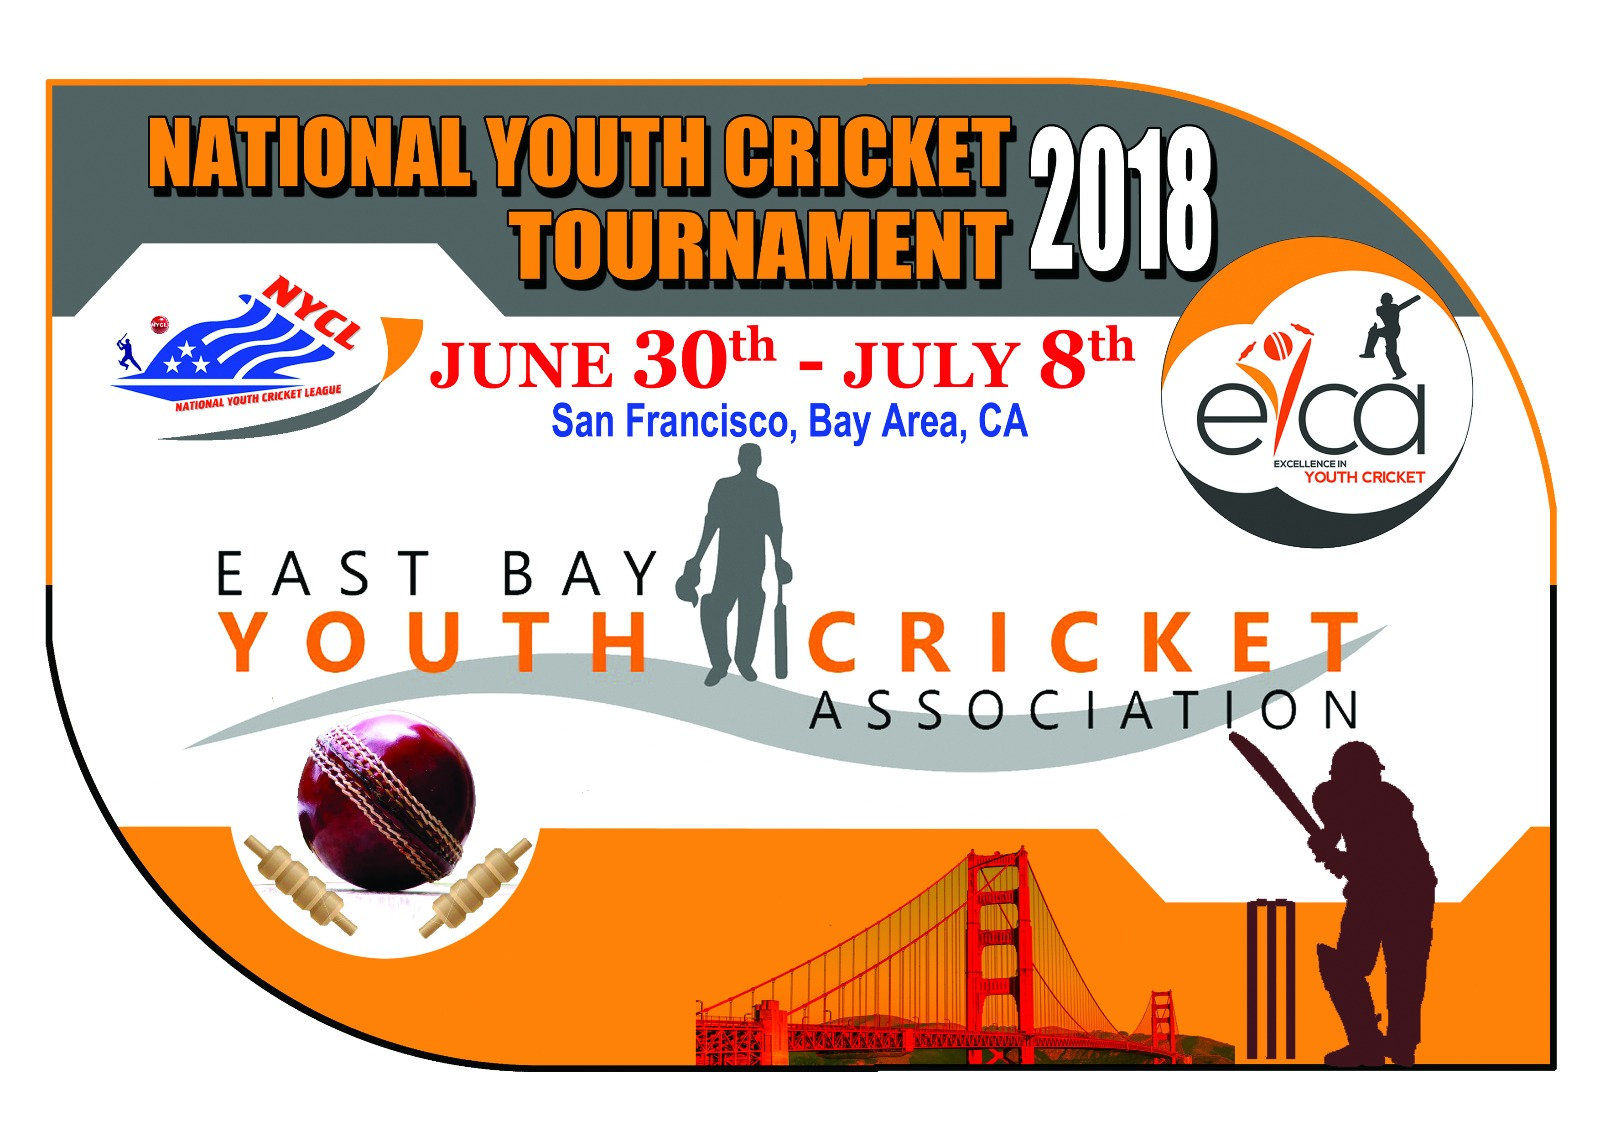 National Youth Cricket League 2018